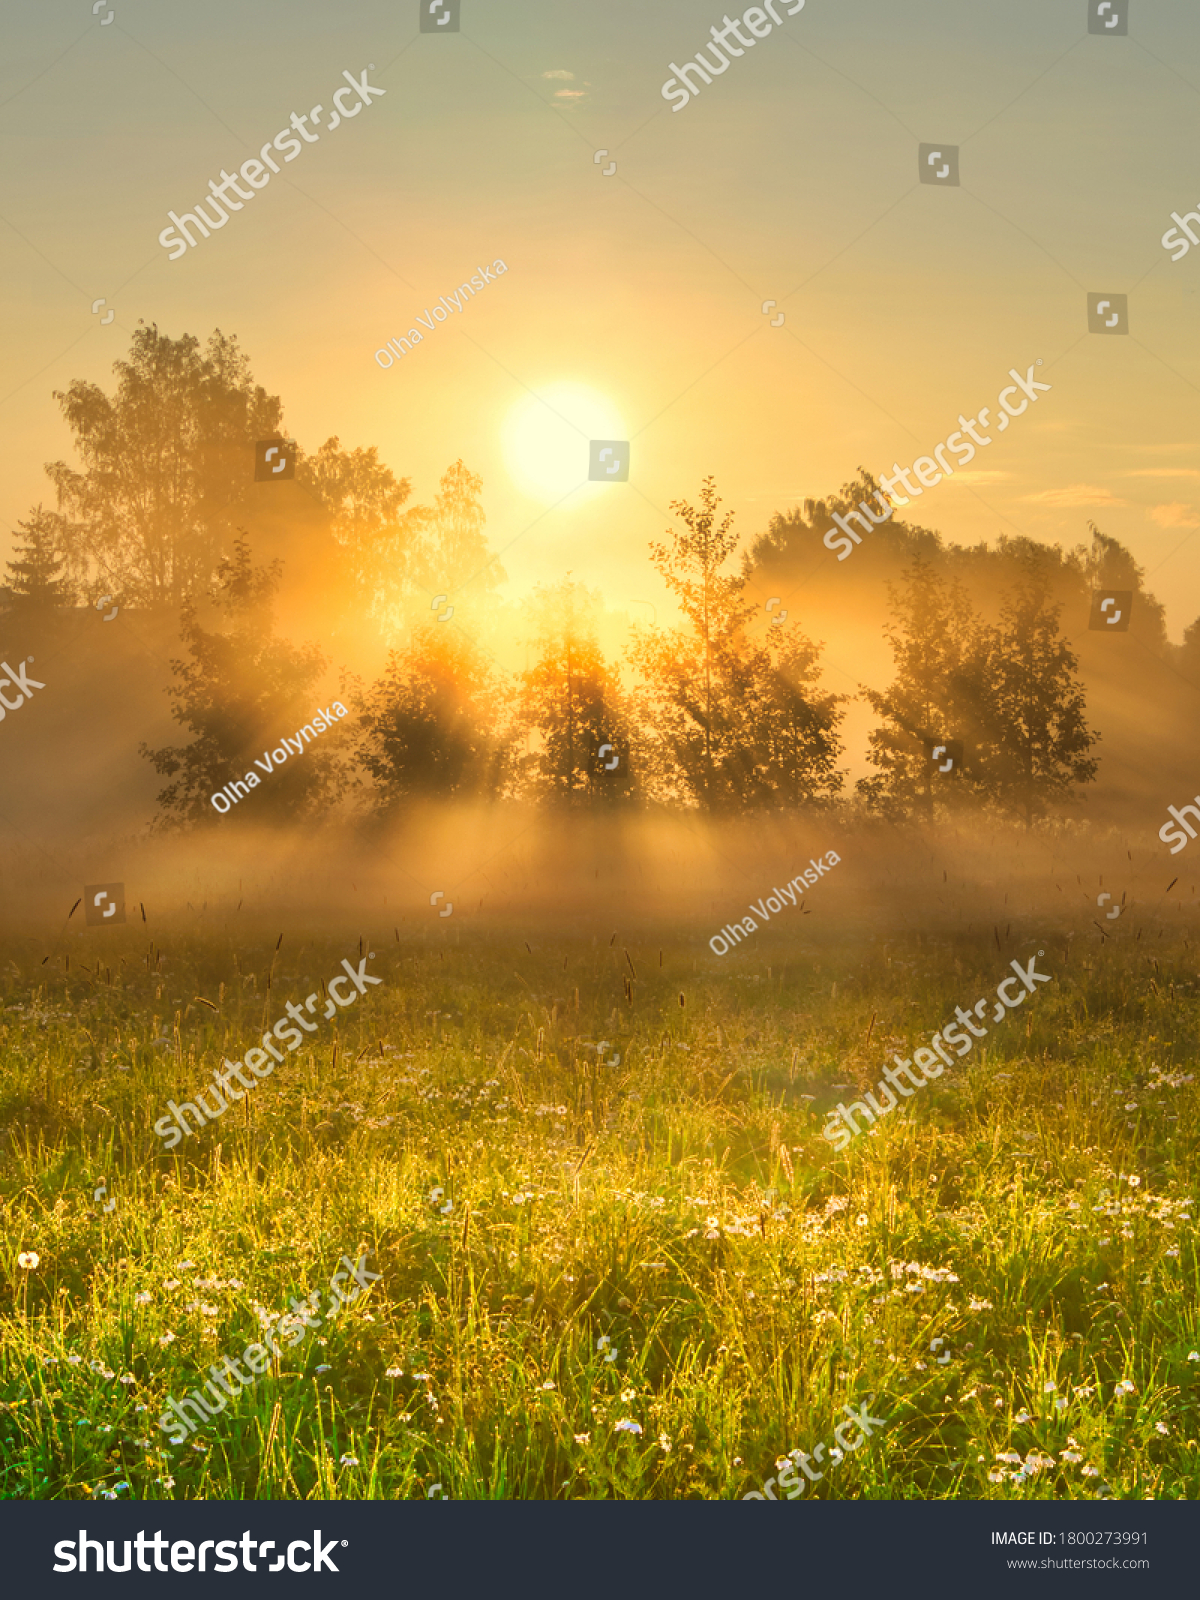 Early morning scenery in field. Sun casting beautiful rays of light through the mist and trees. Vibrant rays of sunlight in hazy meadow. Chamomile field in sunshine. Yellow sunrise with fog in summer. #1800273991